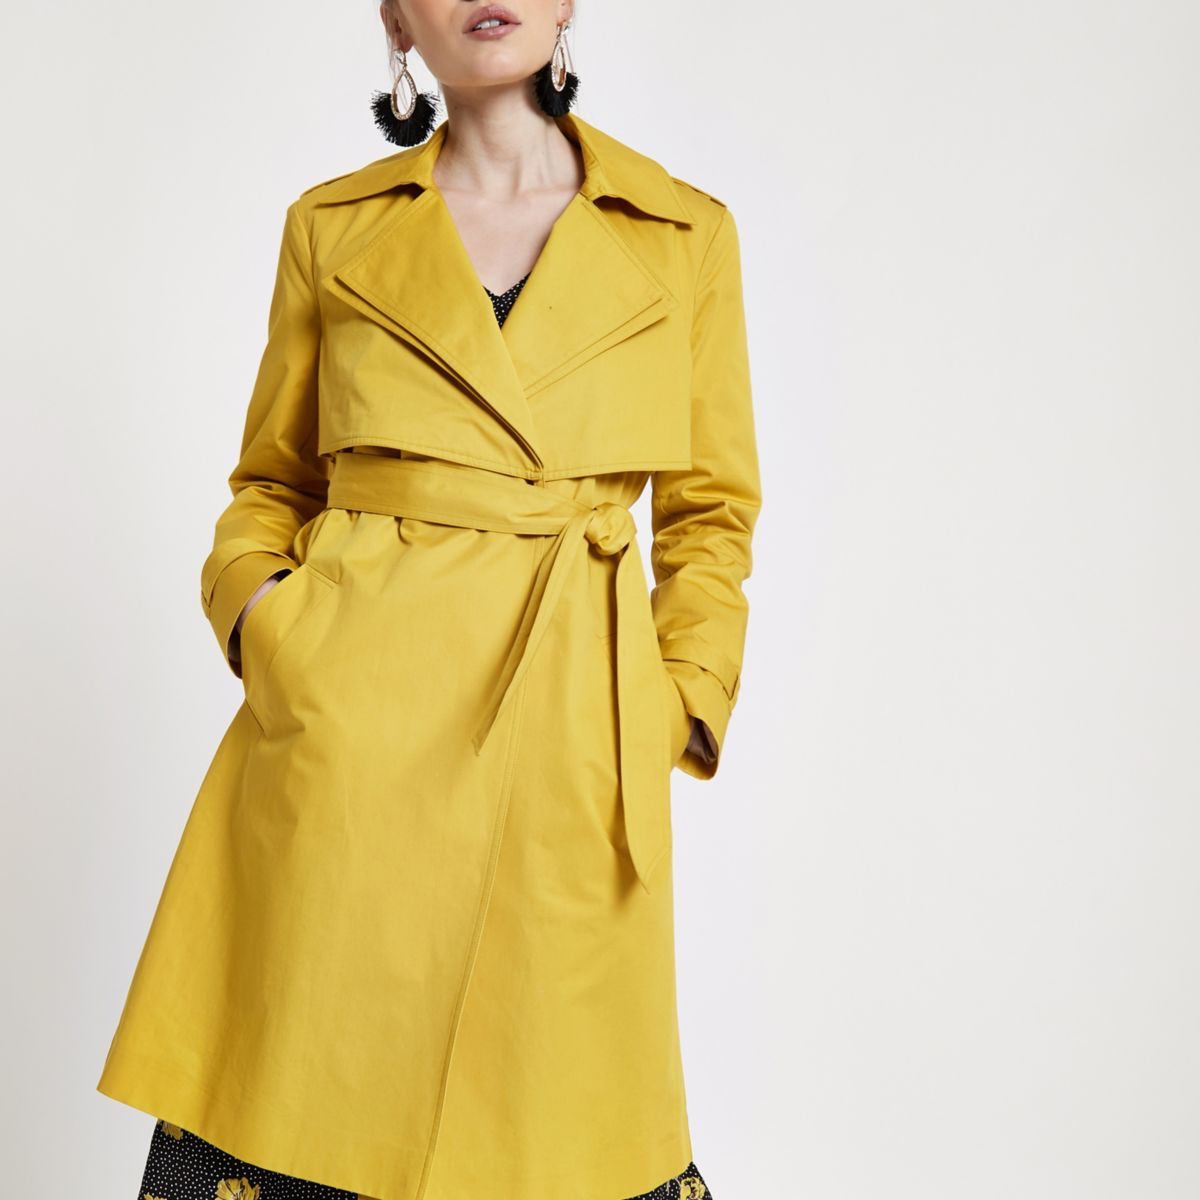 Petite mustard yellow belted trench coat